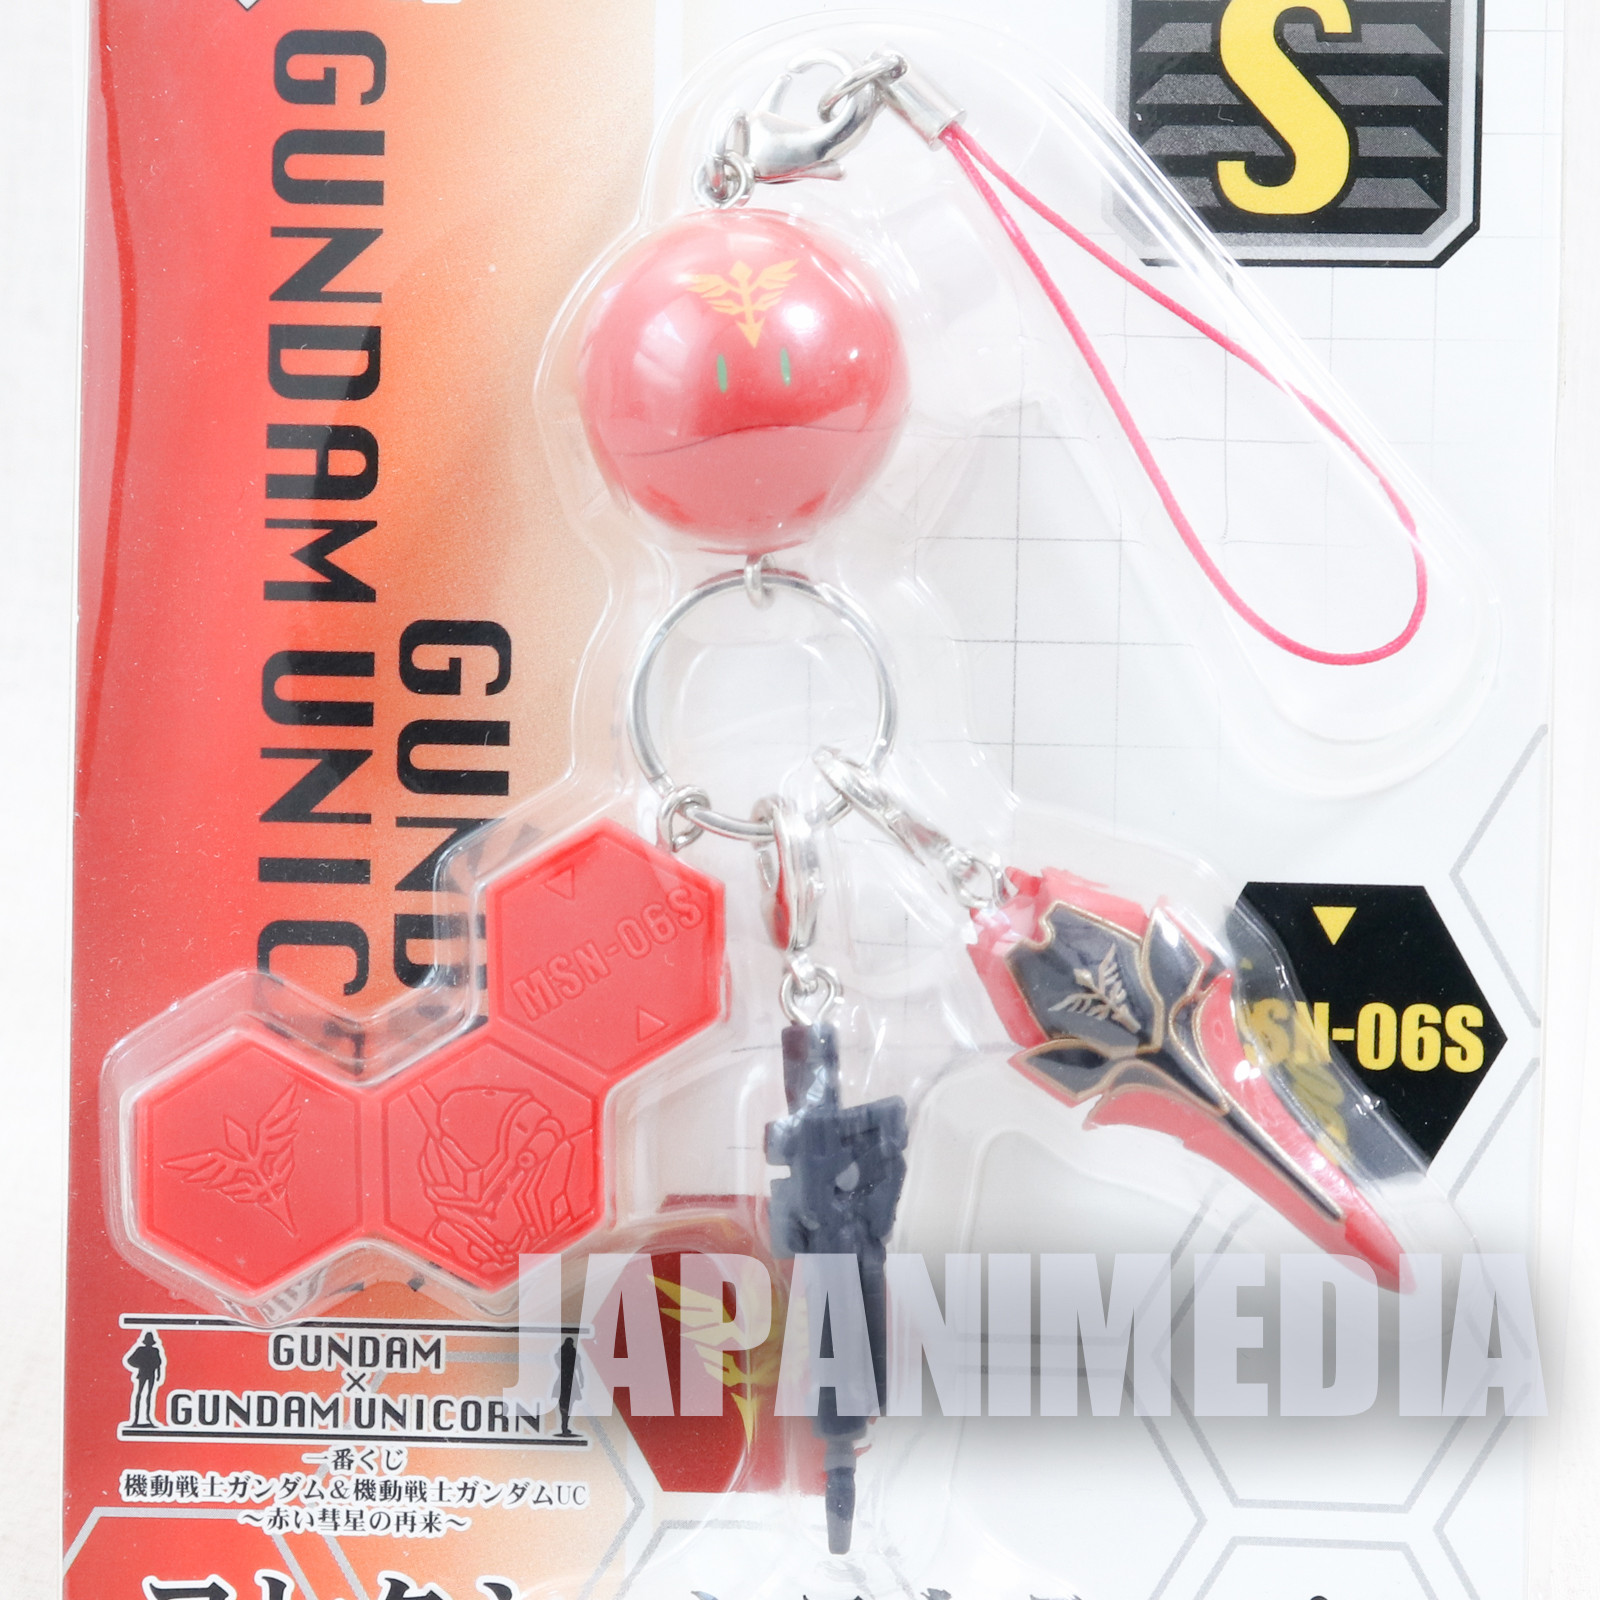 Gundam Mascot Robot Haro + Beam Rifle Sinanju ver. Figure Mobile Strap JAPAN ANIME